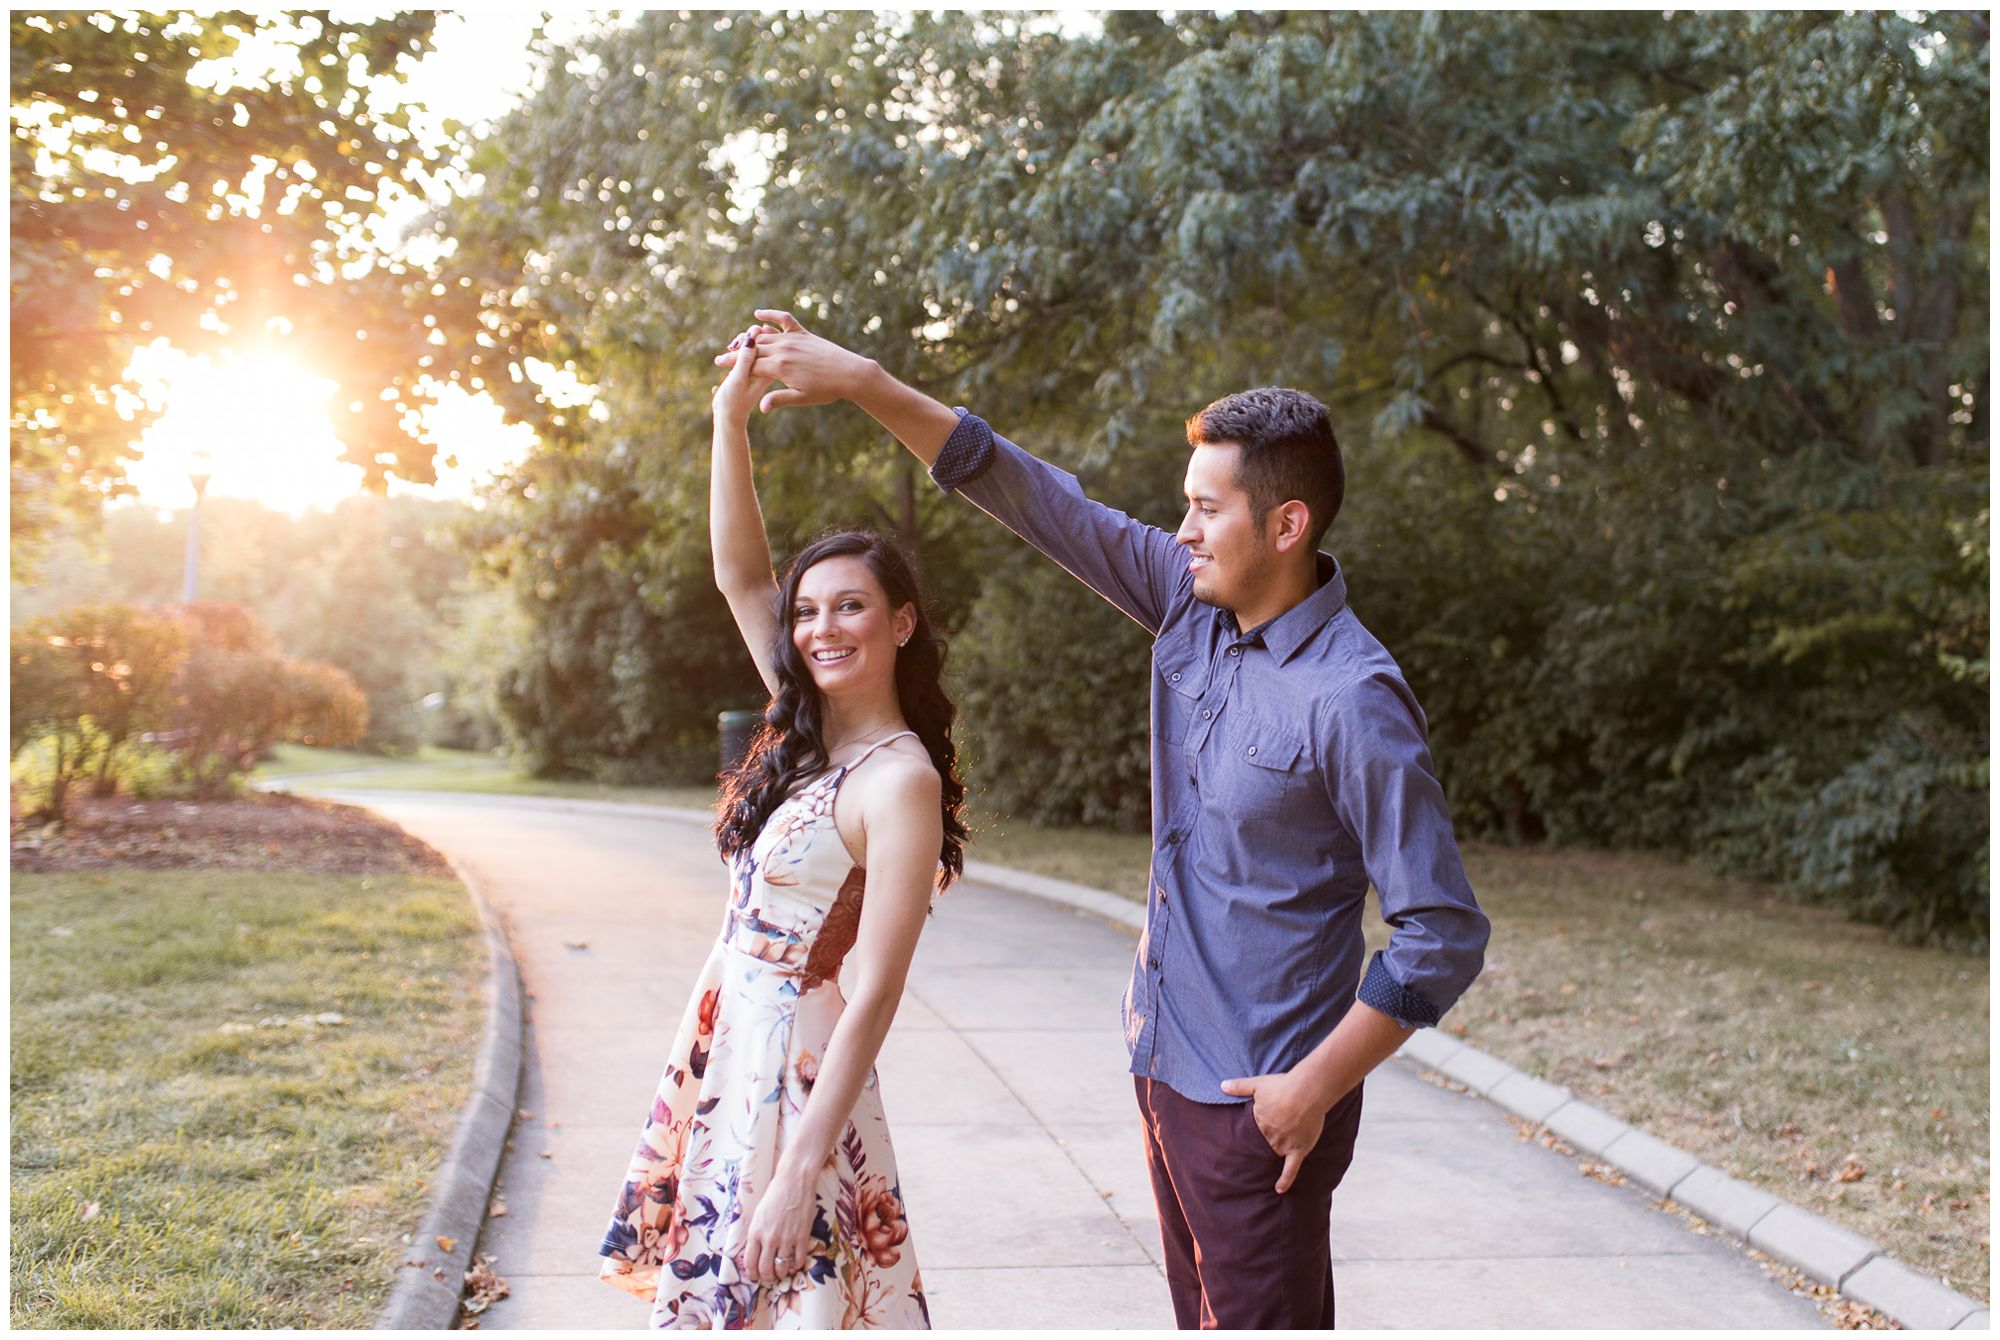 groom twirls bride during engagement session at Headwaters Park in Fort Wayne